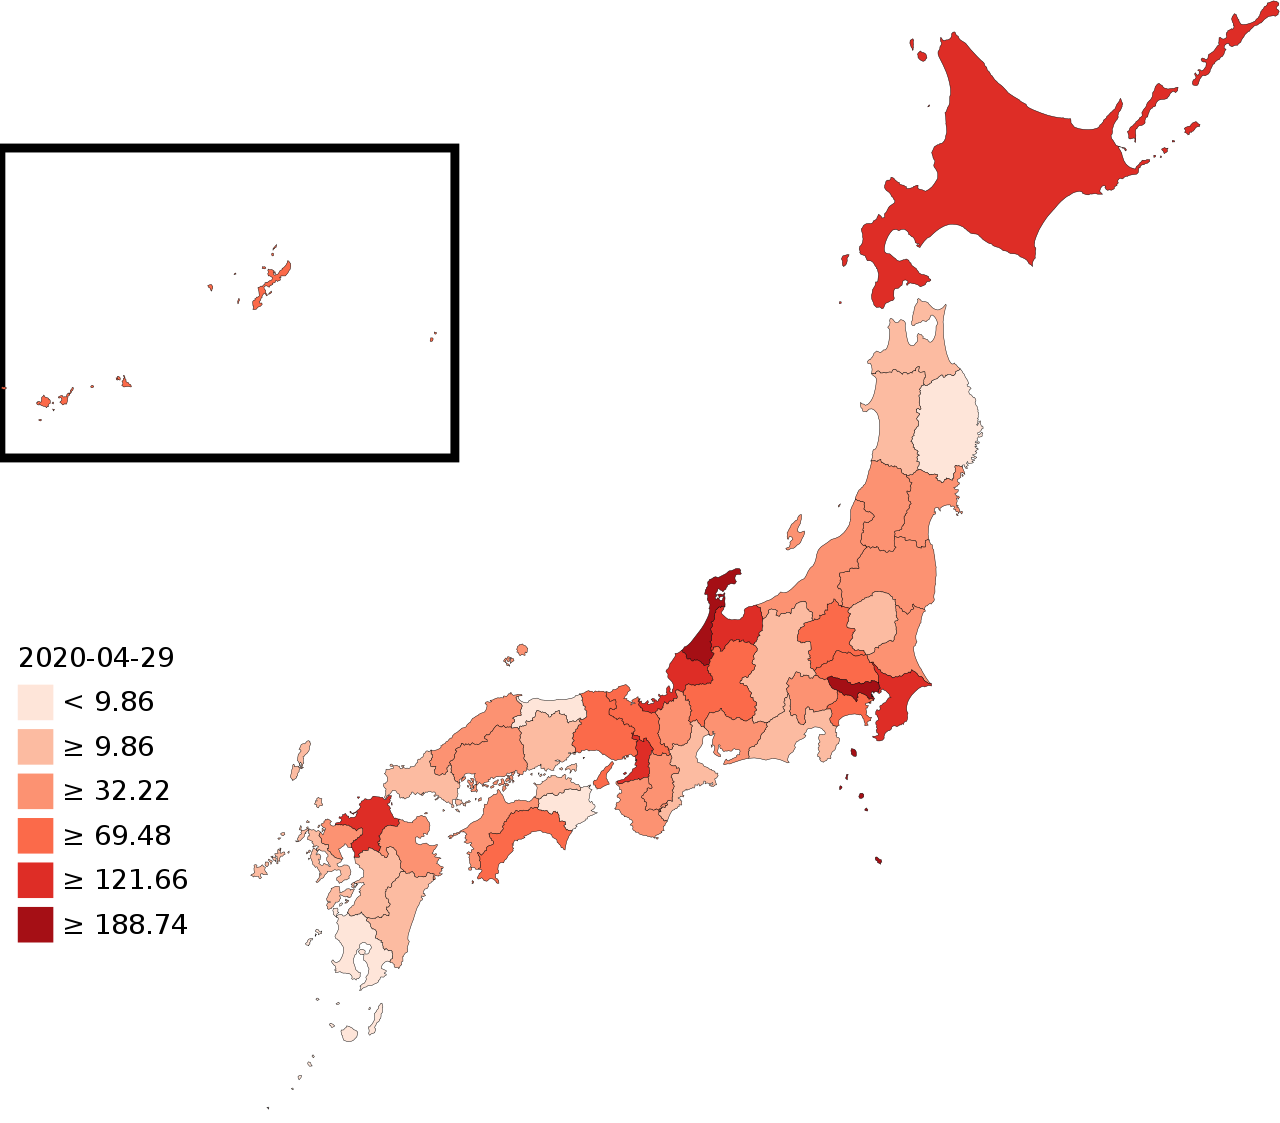 1280px-COVID-19_outbreak_Japan_per_capita_cases_map.svg